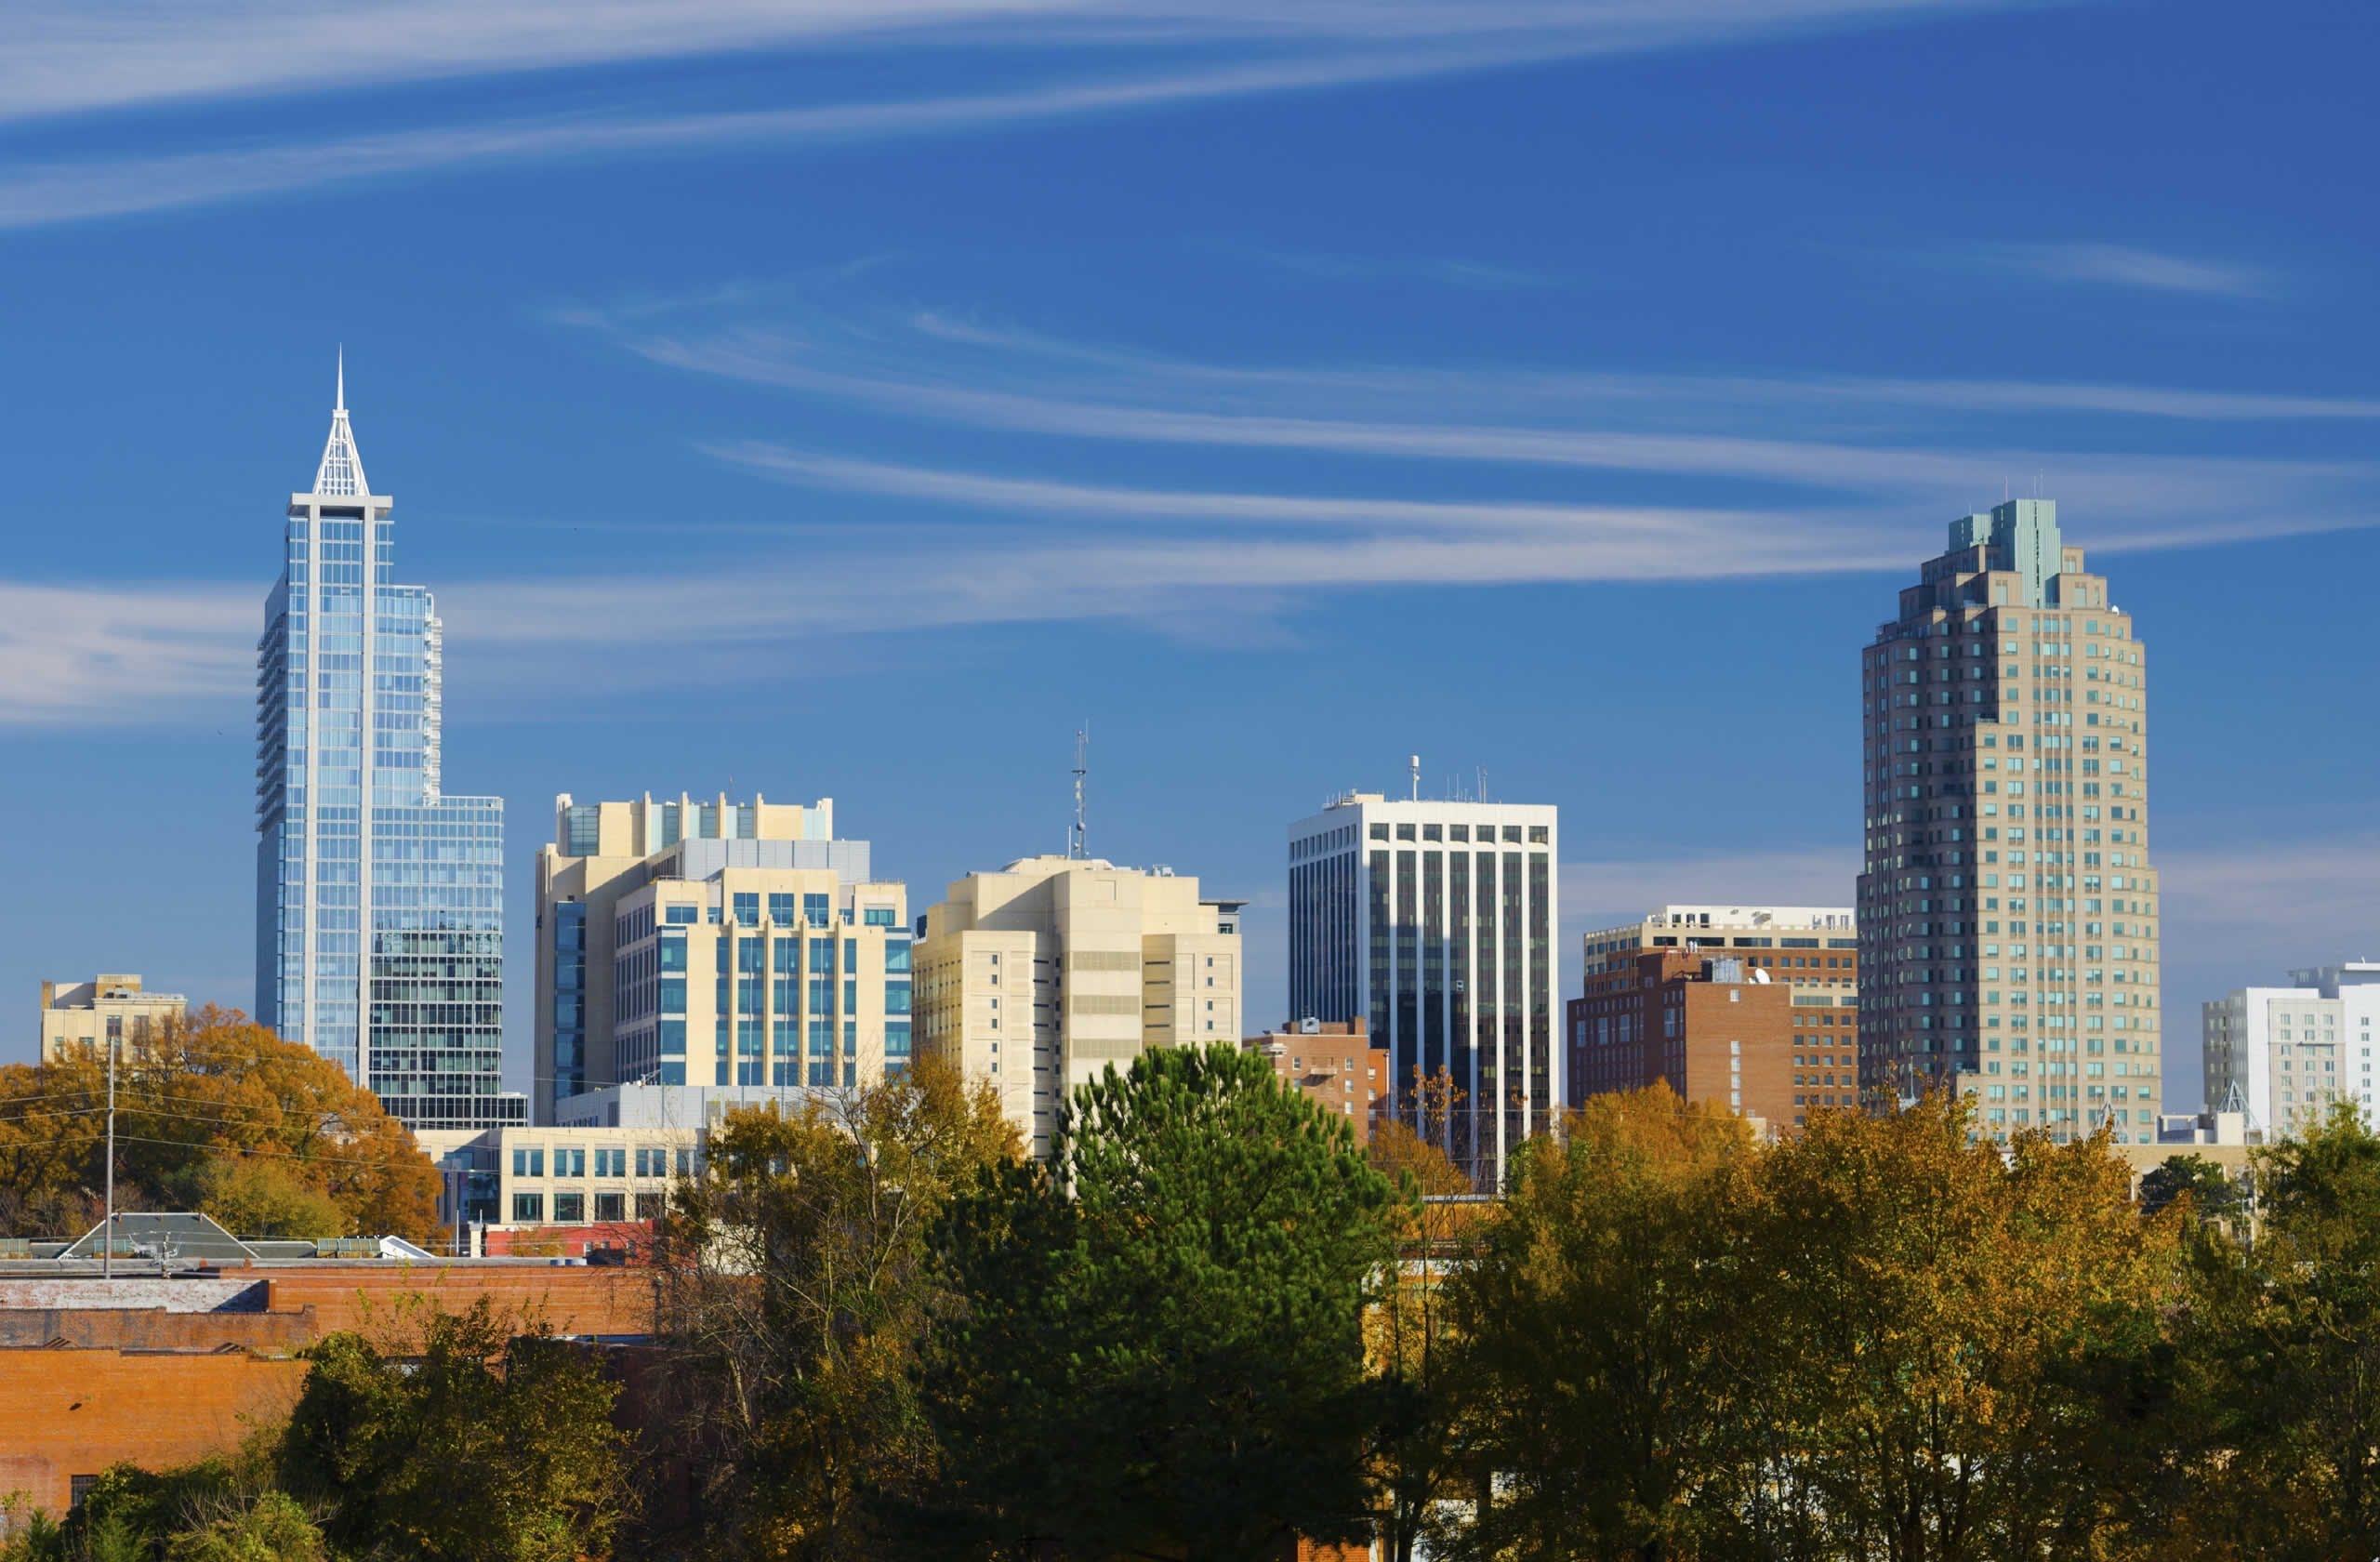 We're located in downtown Raleigh, NC